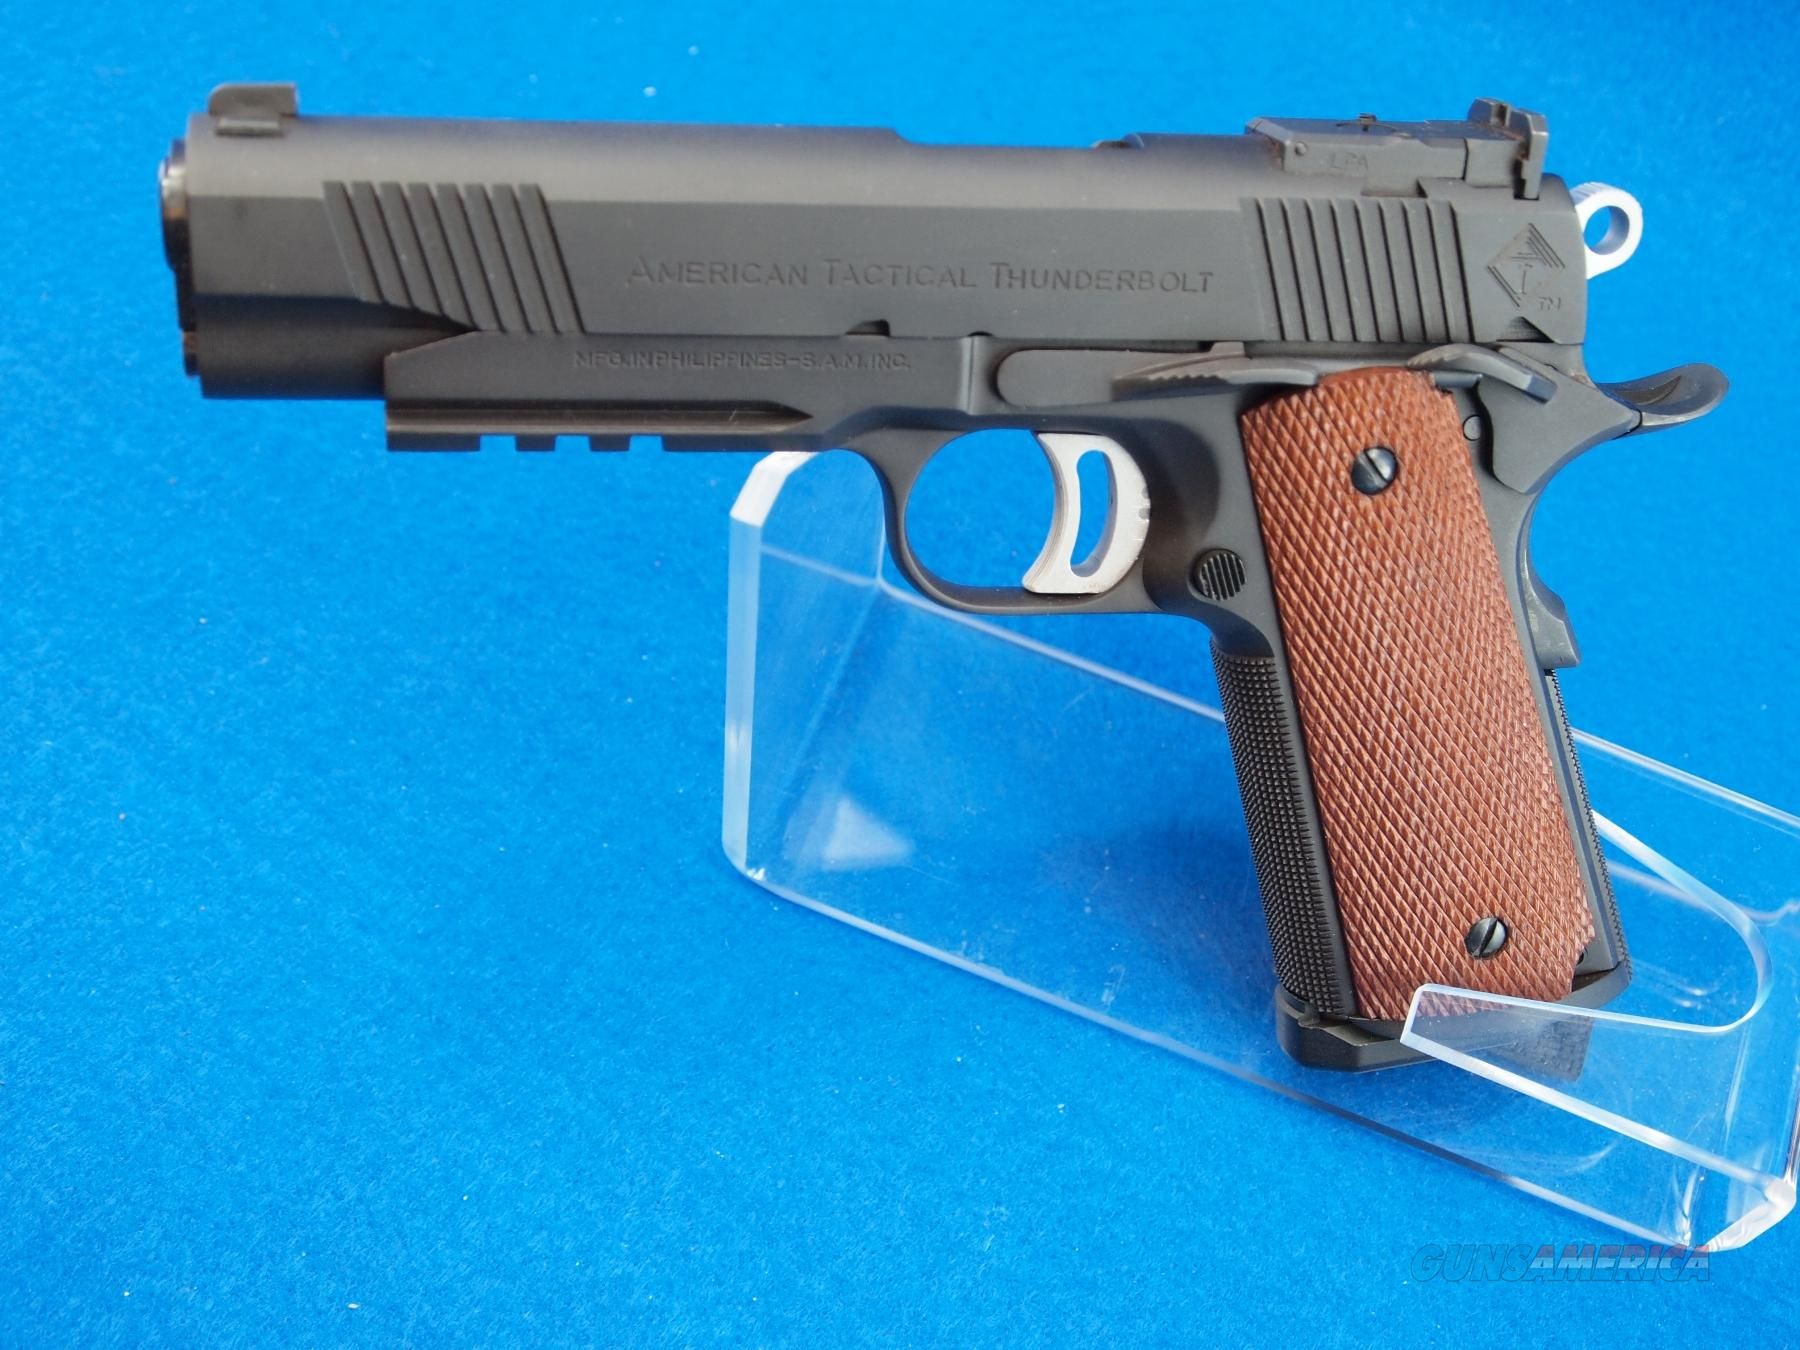 American Tactical 1911 Thunderbolt 45 Acp For Sale